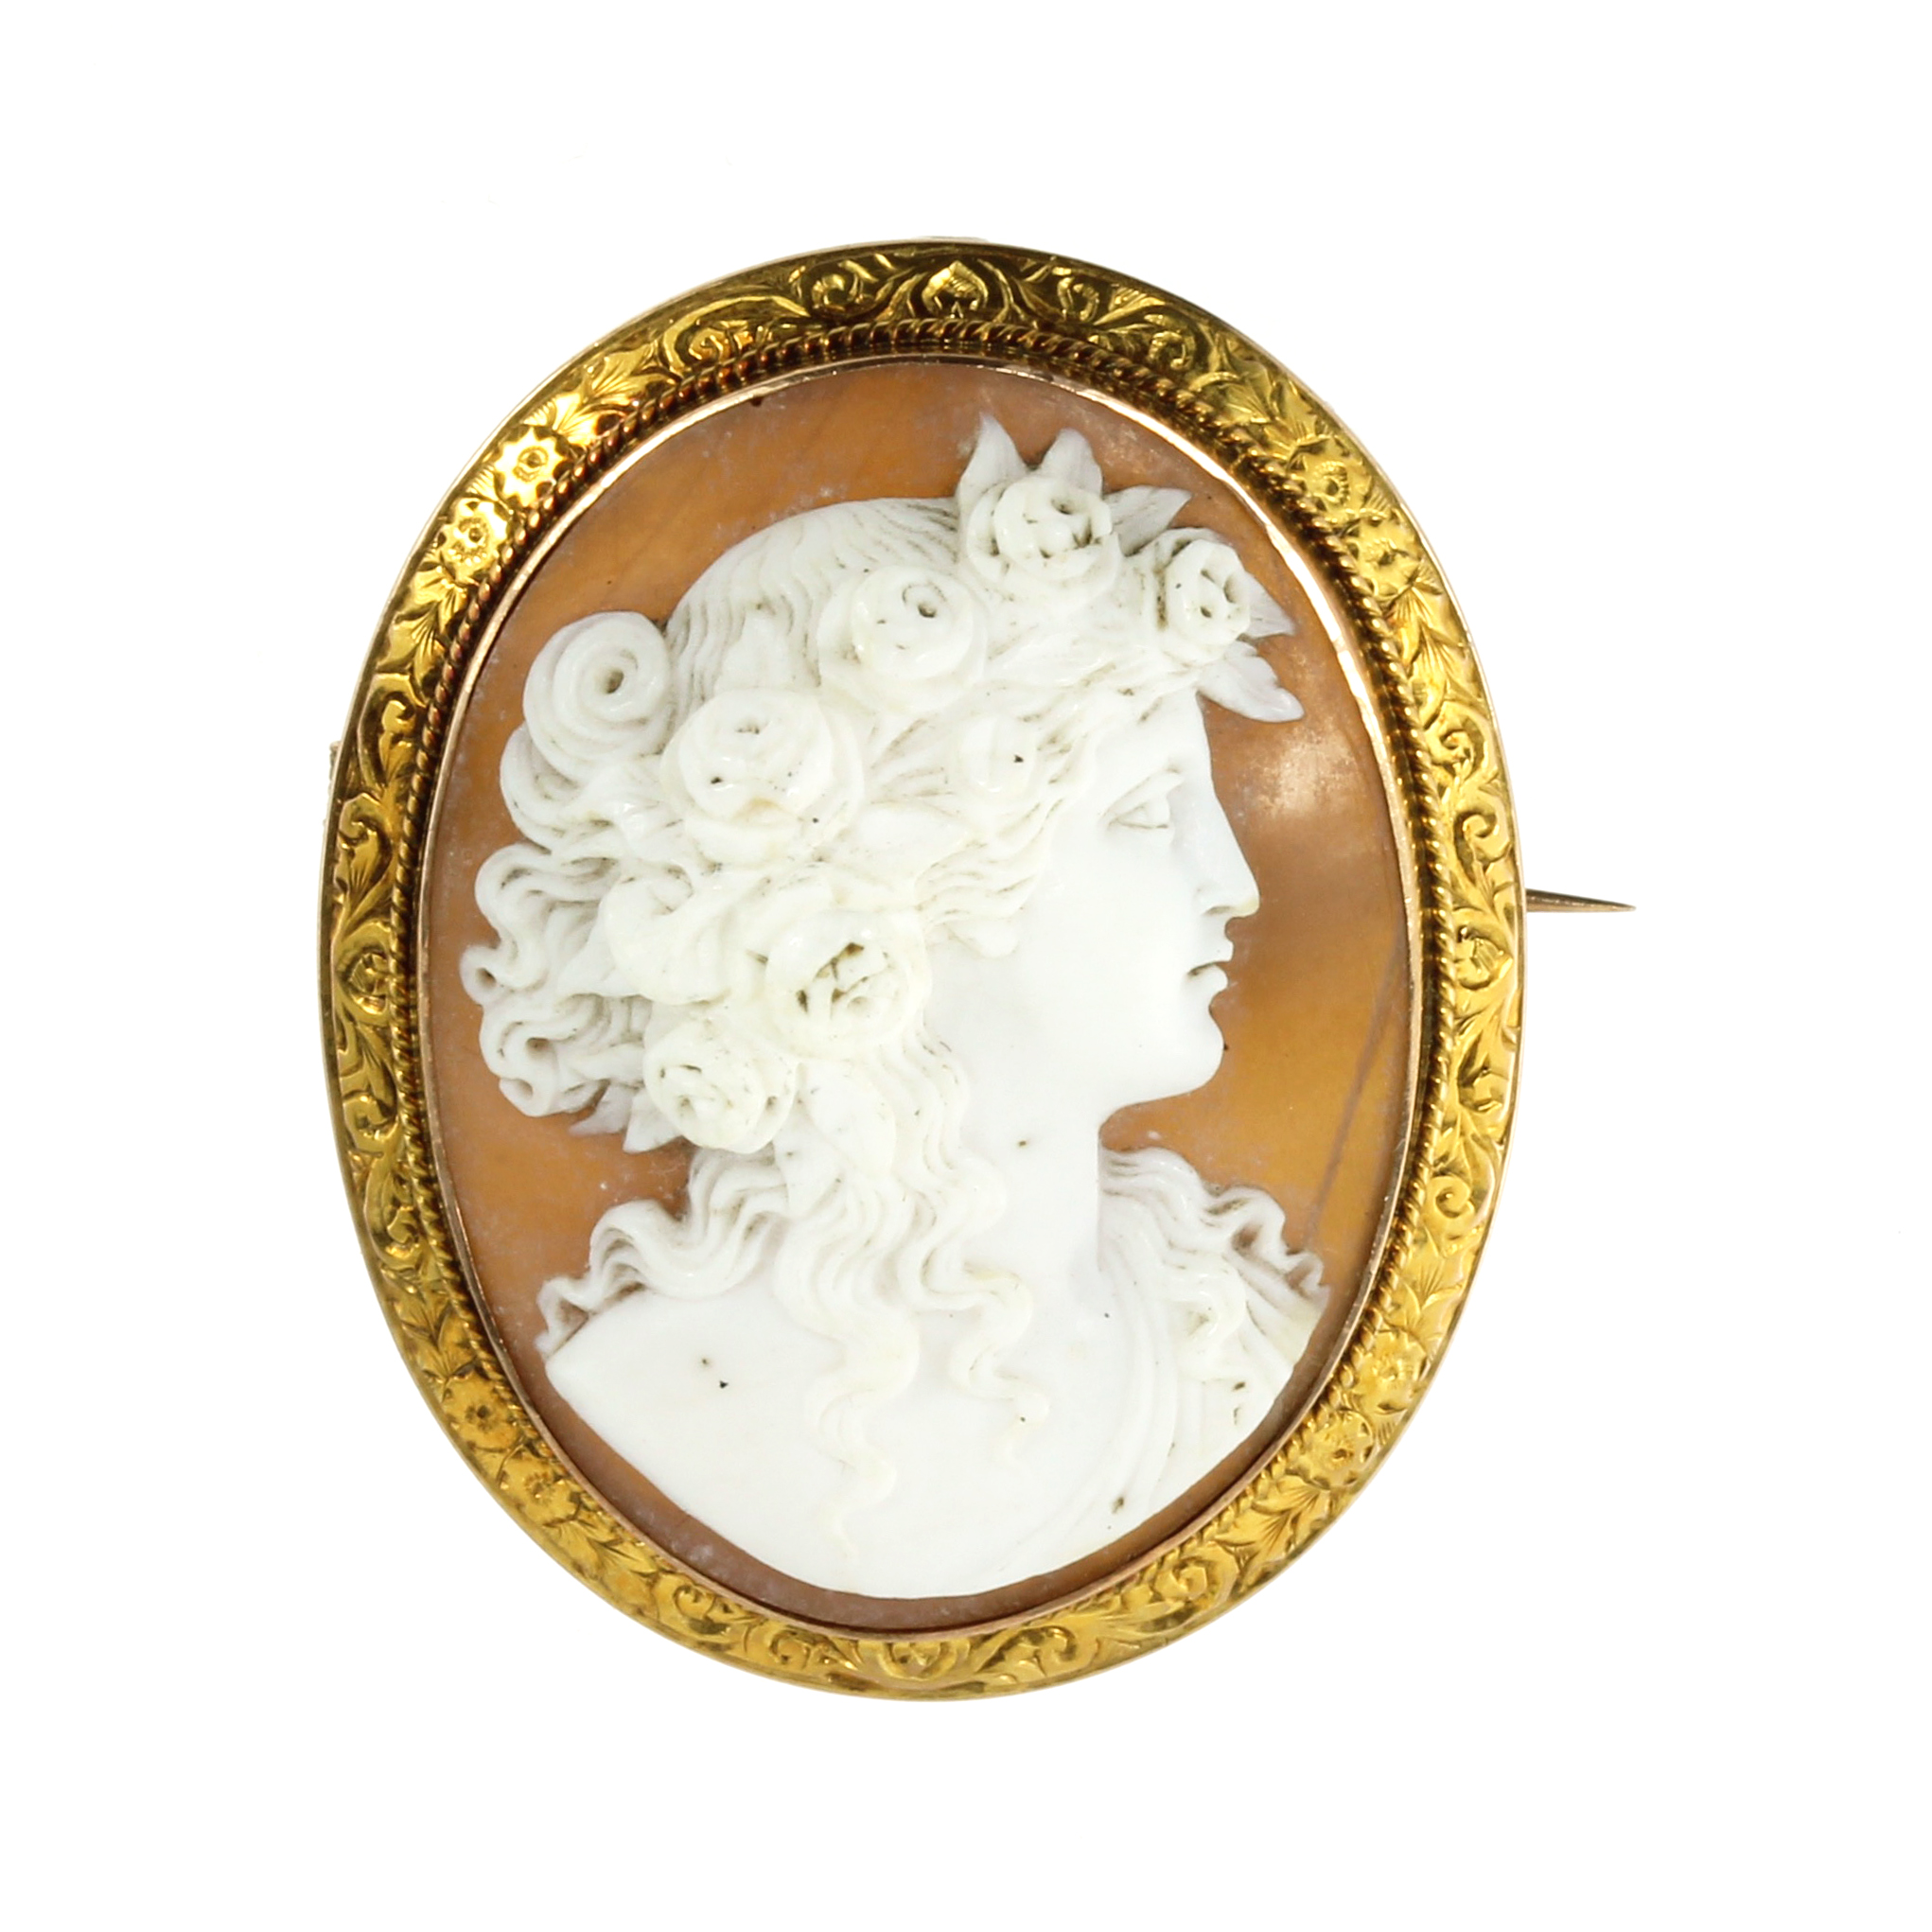 Los 29 - AN ANTIQUE CARVED CAMEO BROOCH set with a carved oval cameo depicting the bust of a lady in profile,